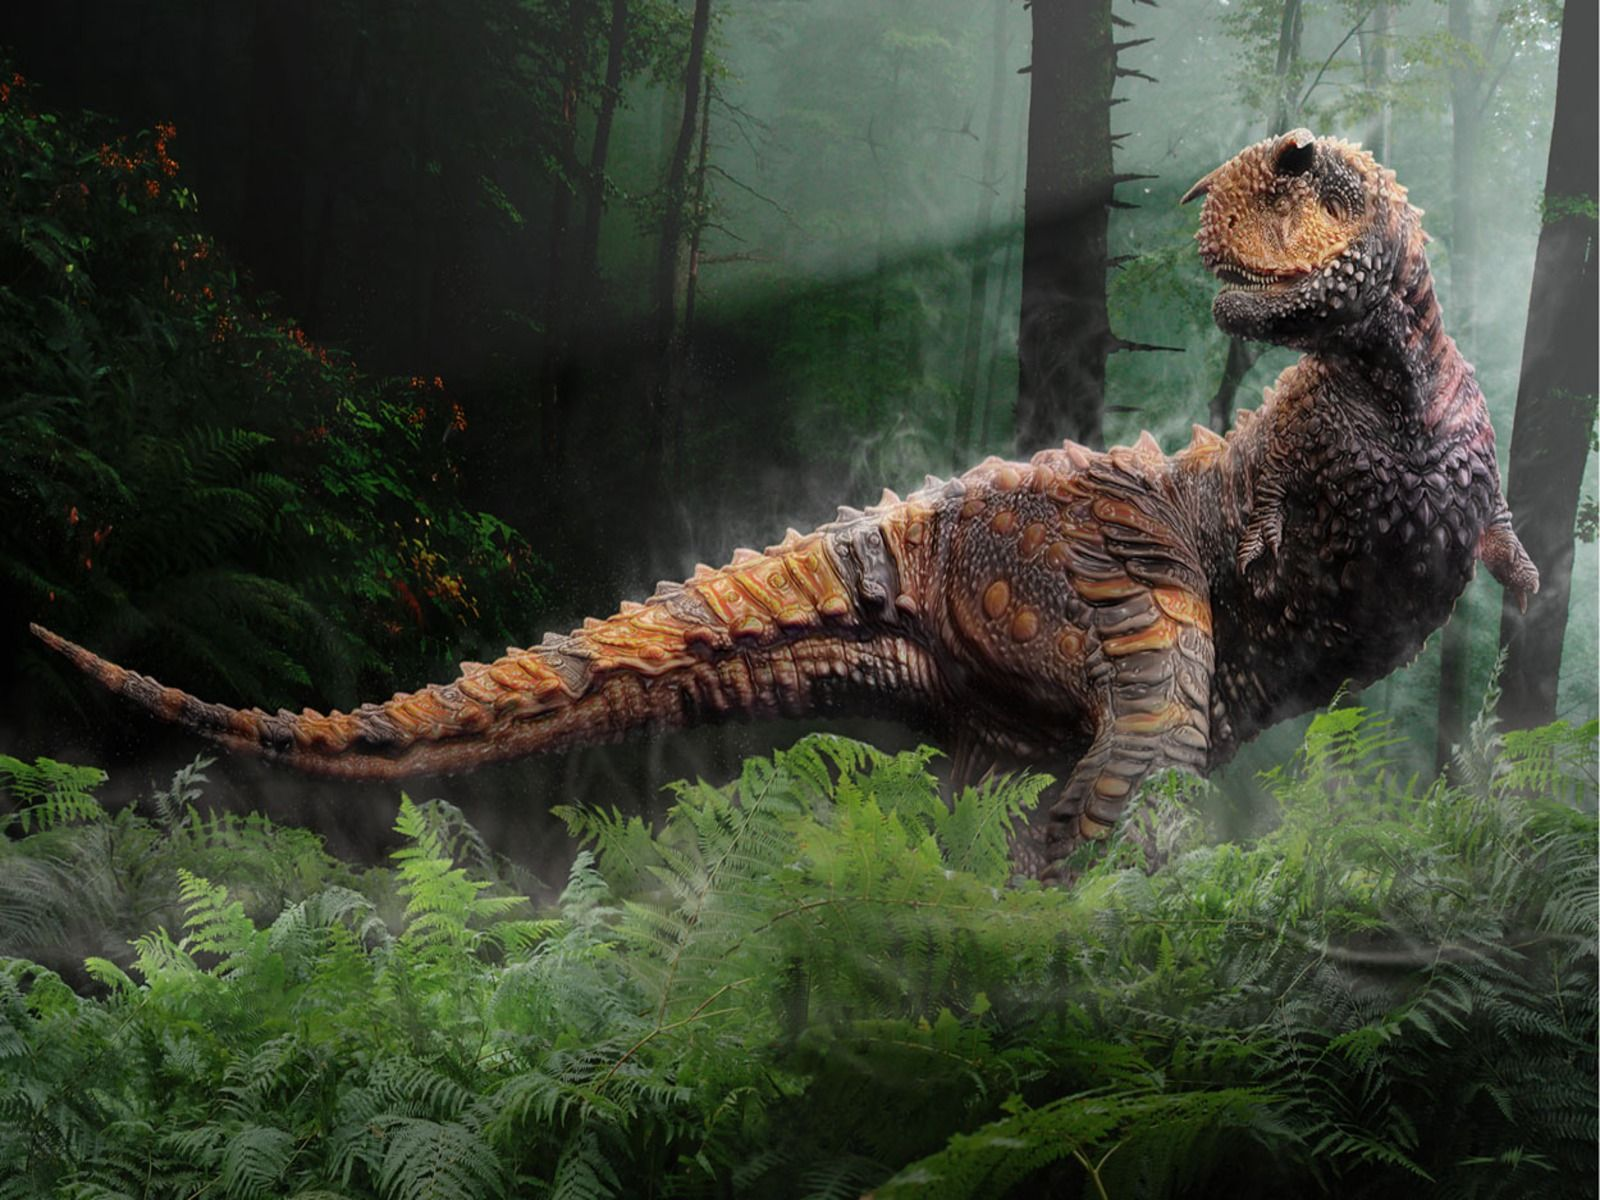 High Definition Photo And Wallpapers: dinosaur unknown artist #dinosaurpics